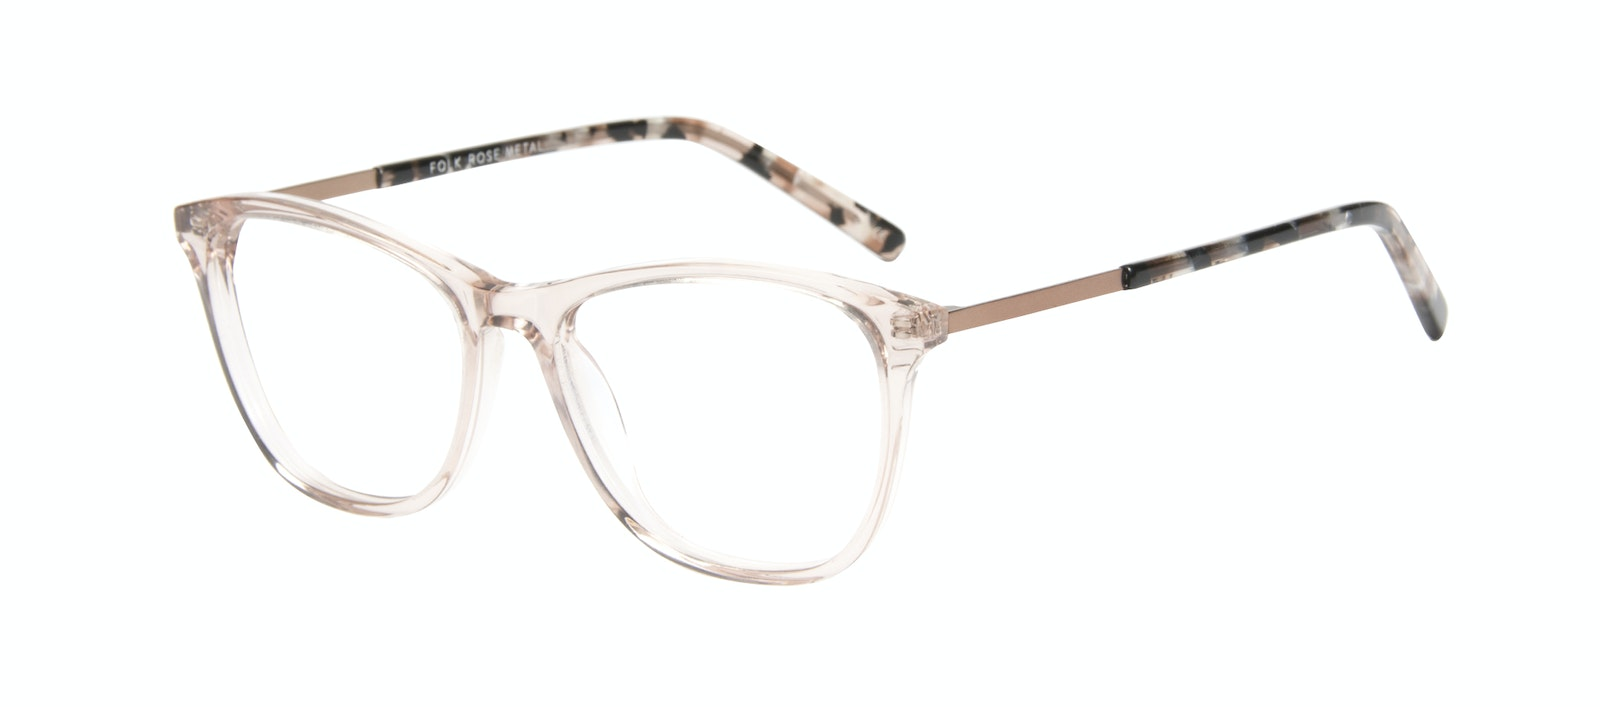 Affordable Fashion Glasses Rectangle Eyeglasses Women Folk Rose Metal Tilt